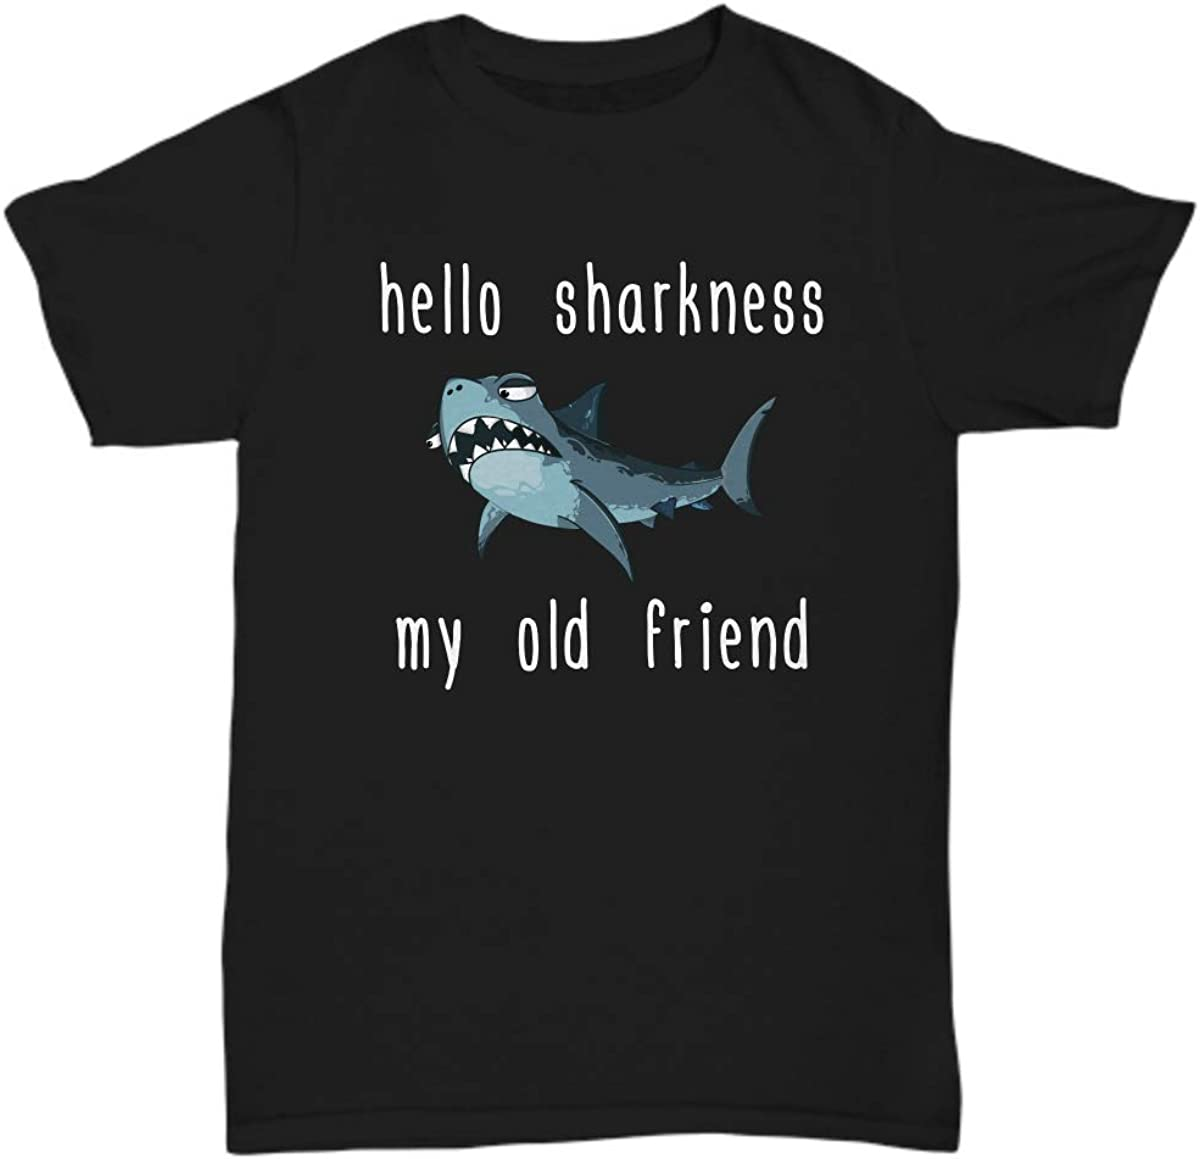 Funny Shark T-Shirt - Marine Biologist Funny Gift - Shark Lover Present - Hello Sharkness My Old Friend - Unisex Tee